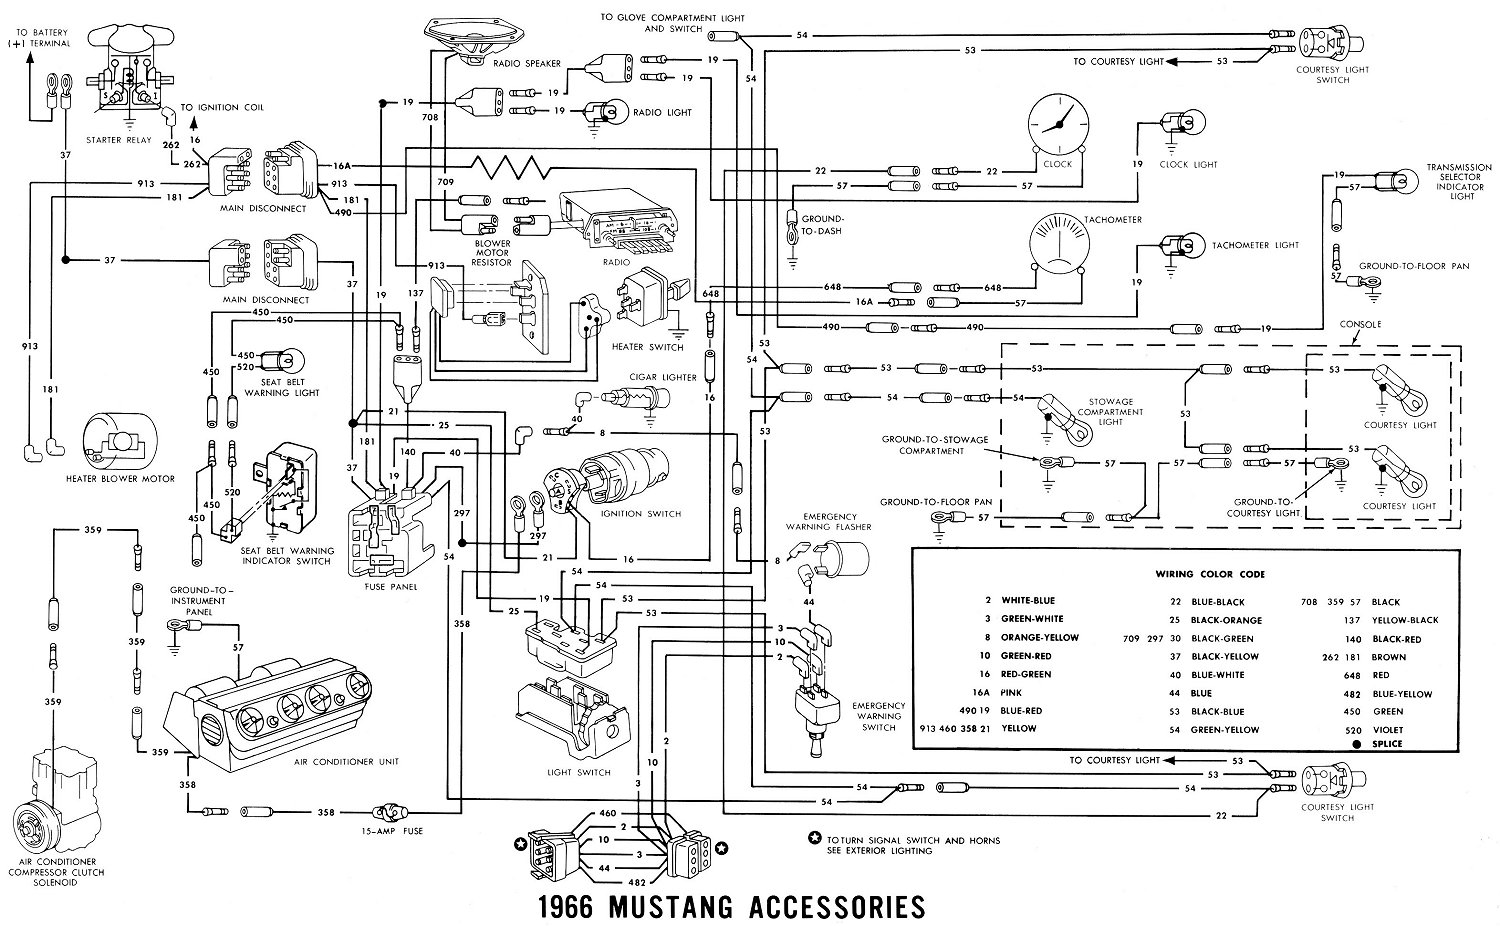 66acces1 1966 mustang wiring diagrams average joe restoration 2007 ford mustang gt wiring diagram at gsmx.co